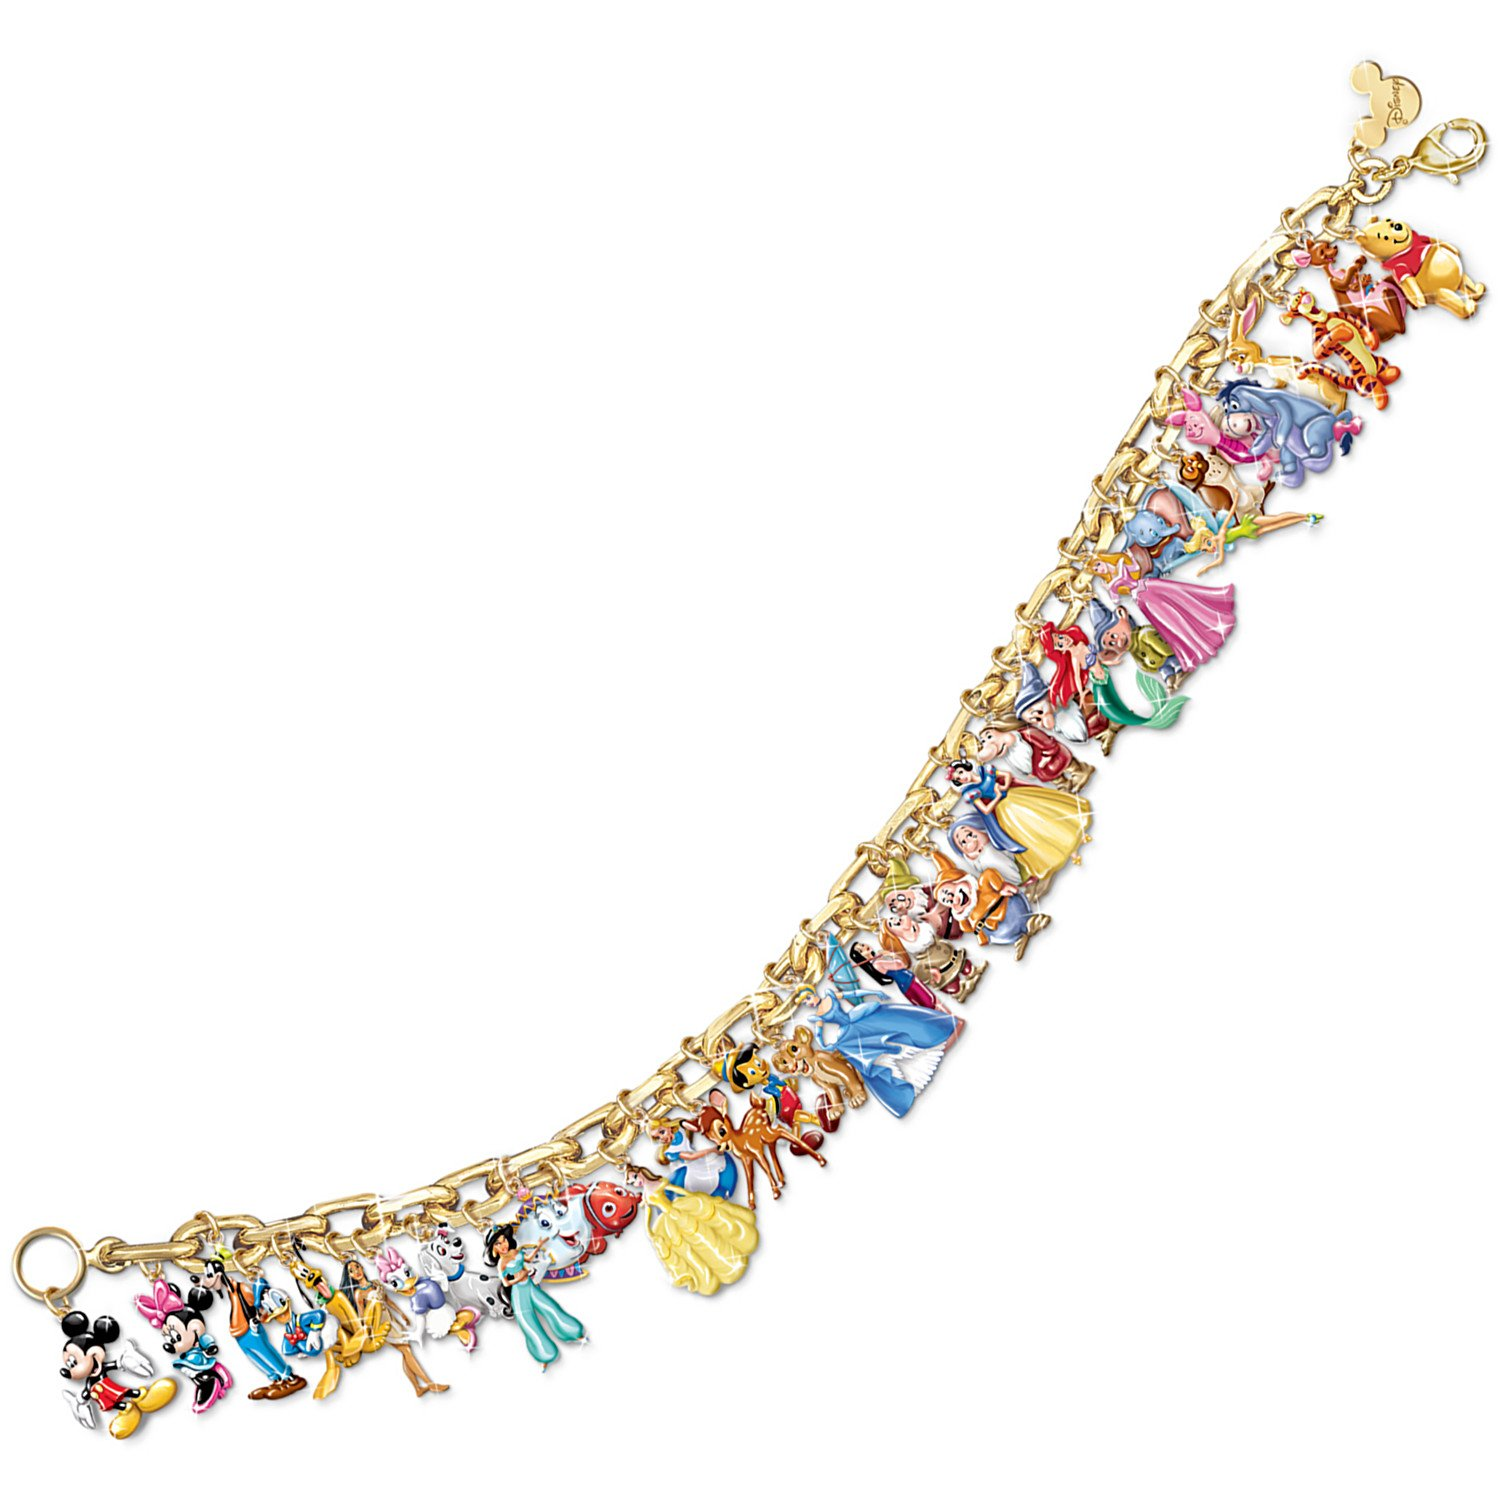 1e233ac72 Amazon.com: 24k Gold Plated Ultimate Disney Classic Charm Bracelet  Featuring 37 Disney Characters By the Bradford Exchange: Link Charm  Bracelets: Jewelry